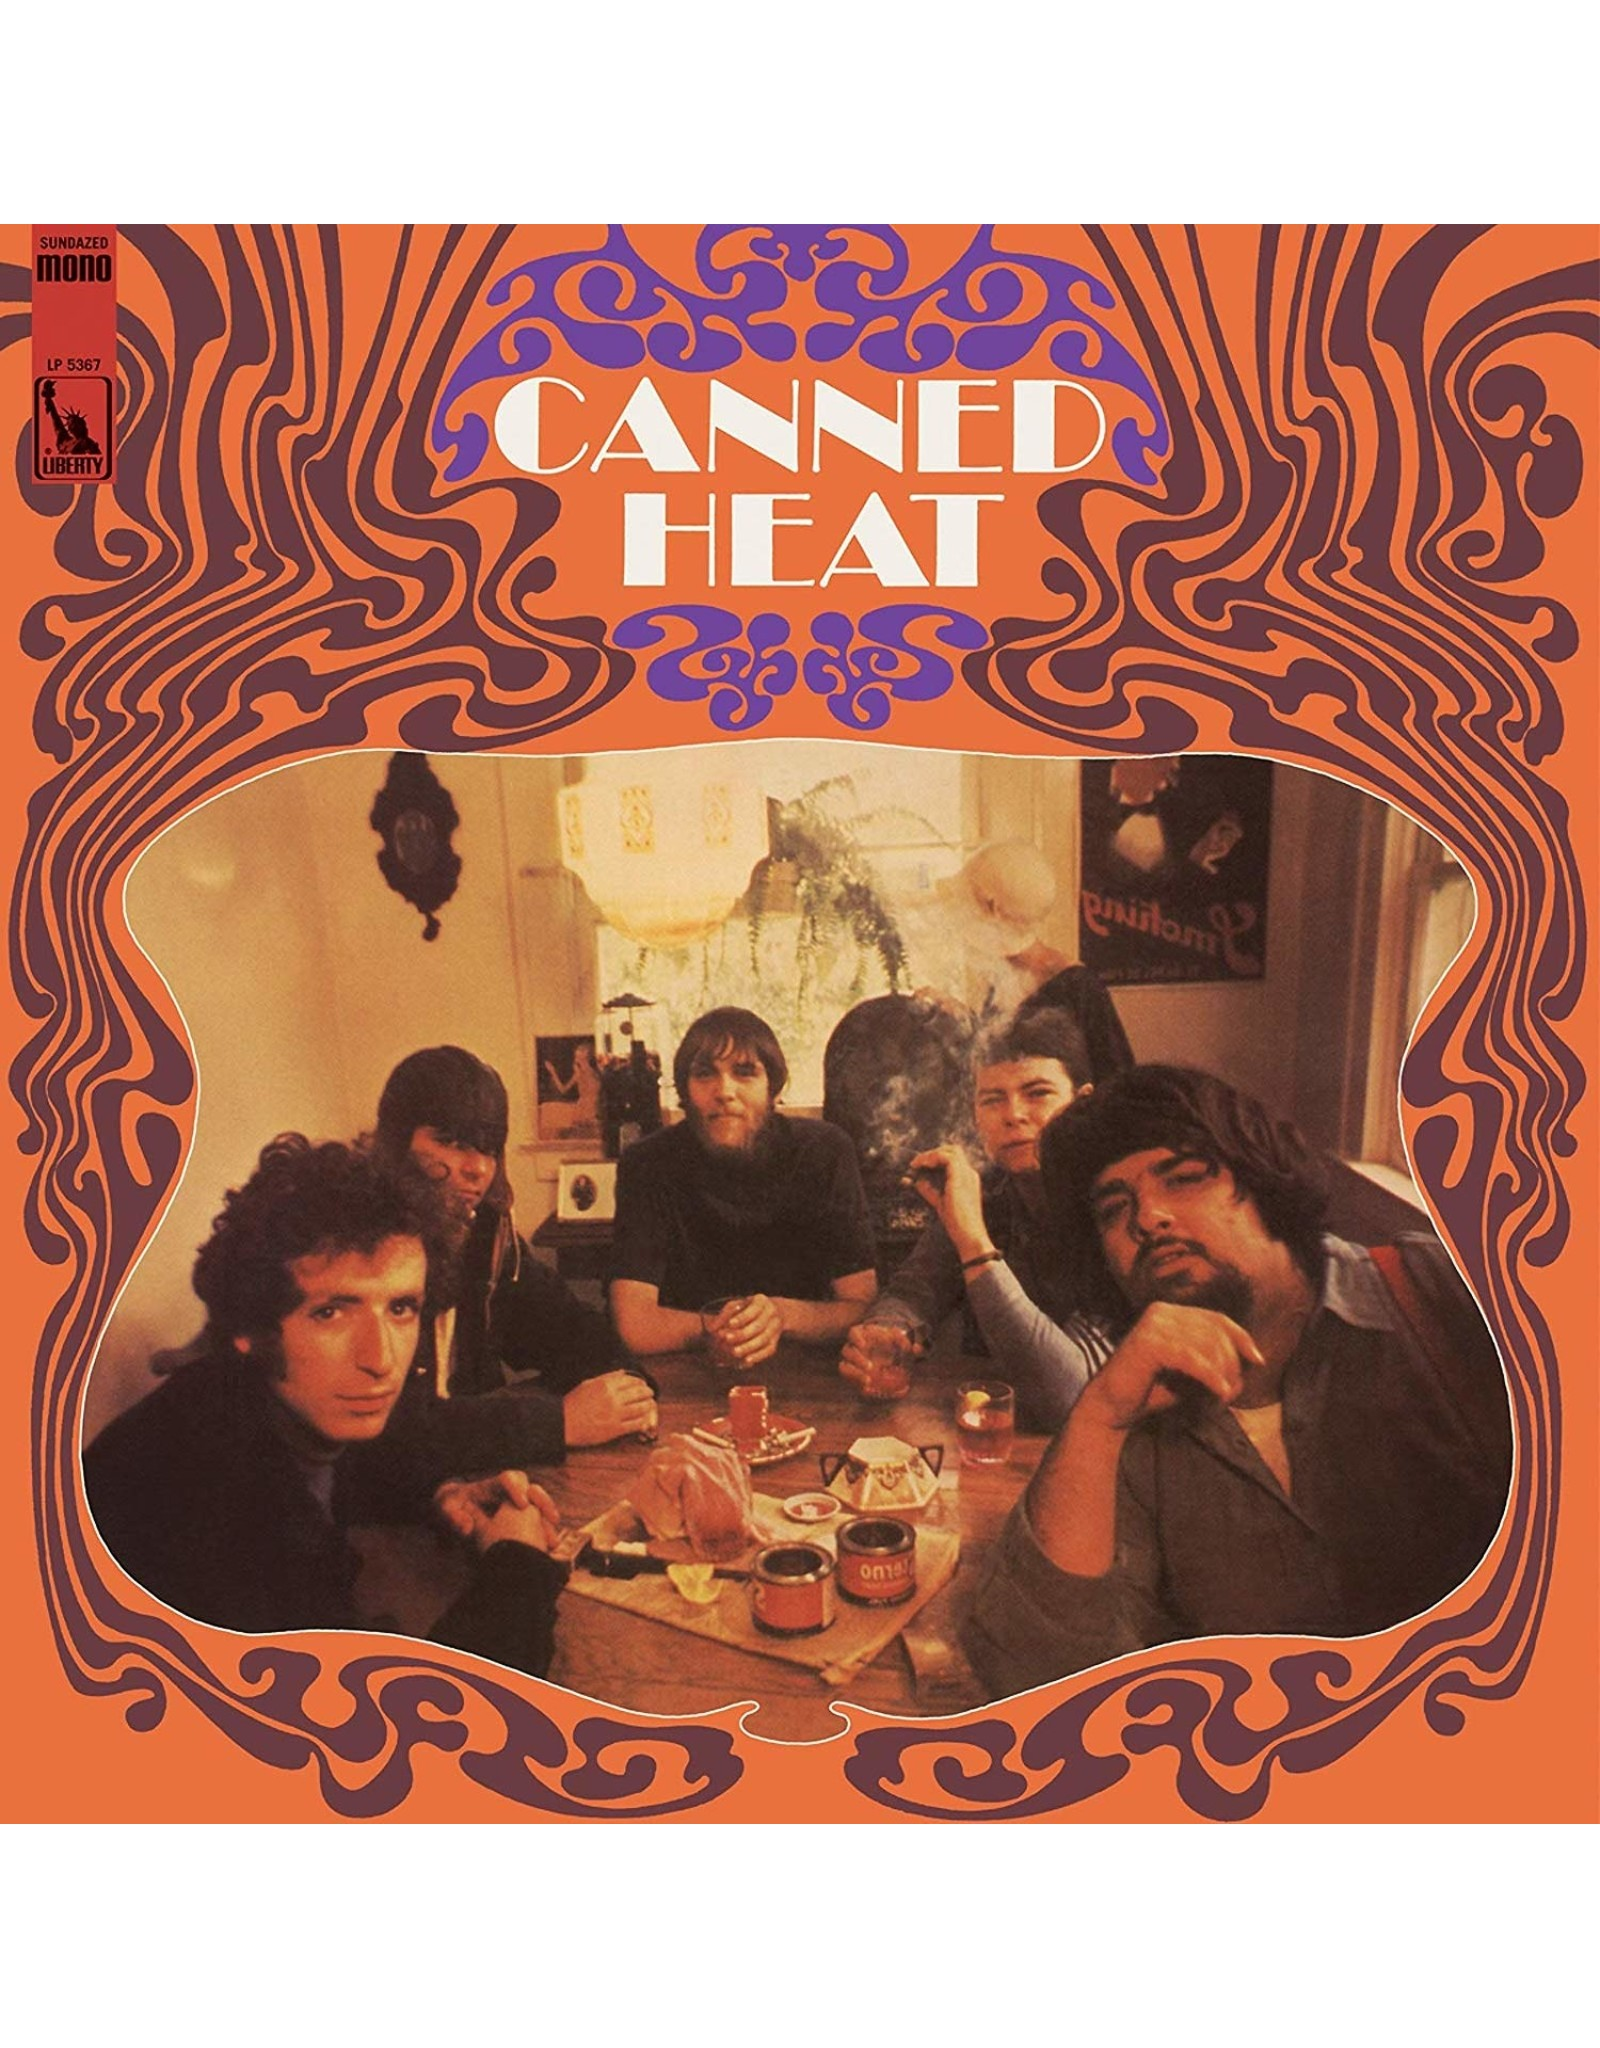 Canned Heat - Canned Heat (Gold Vinyl) [Mono]